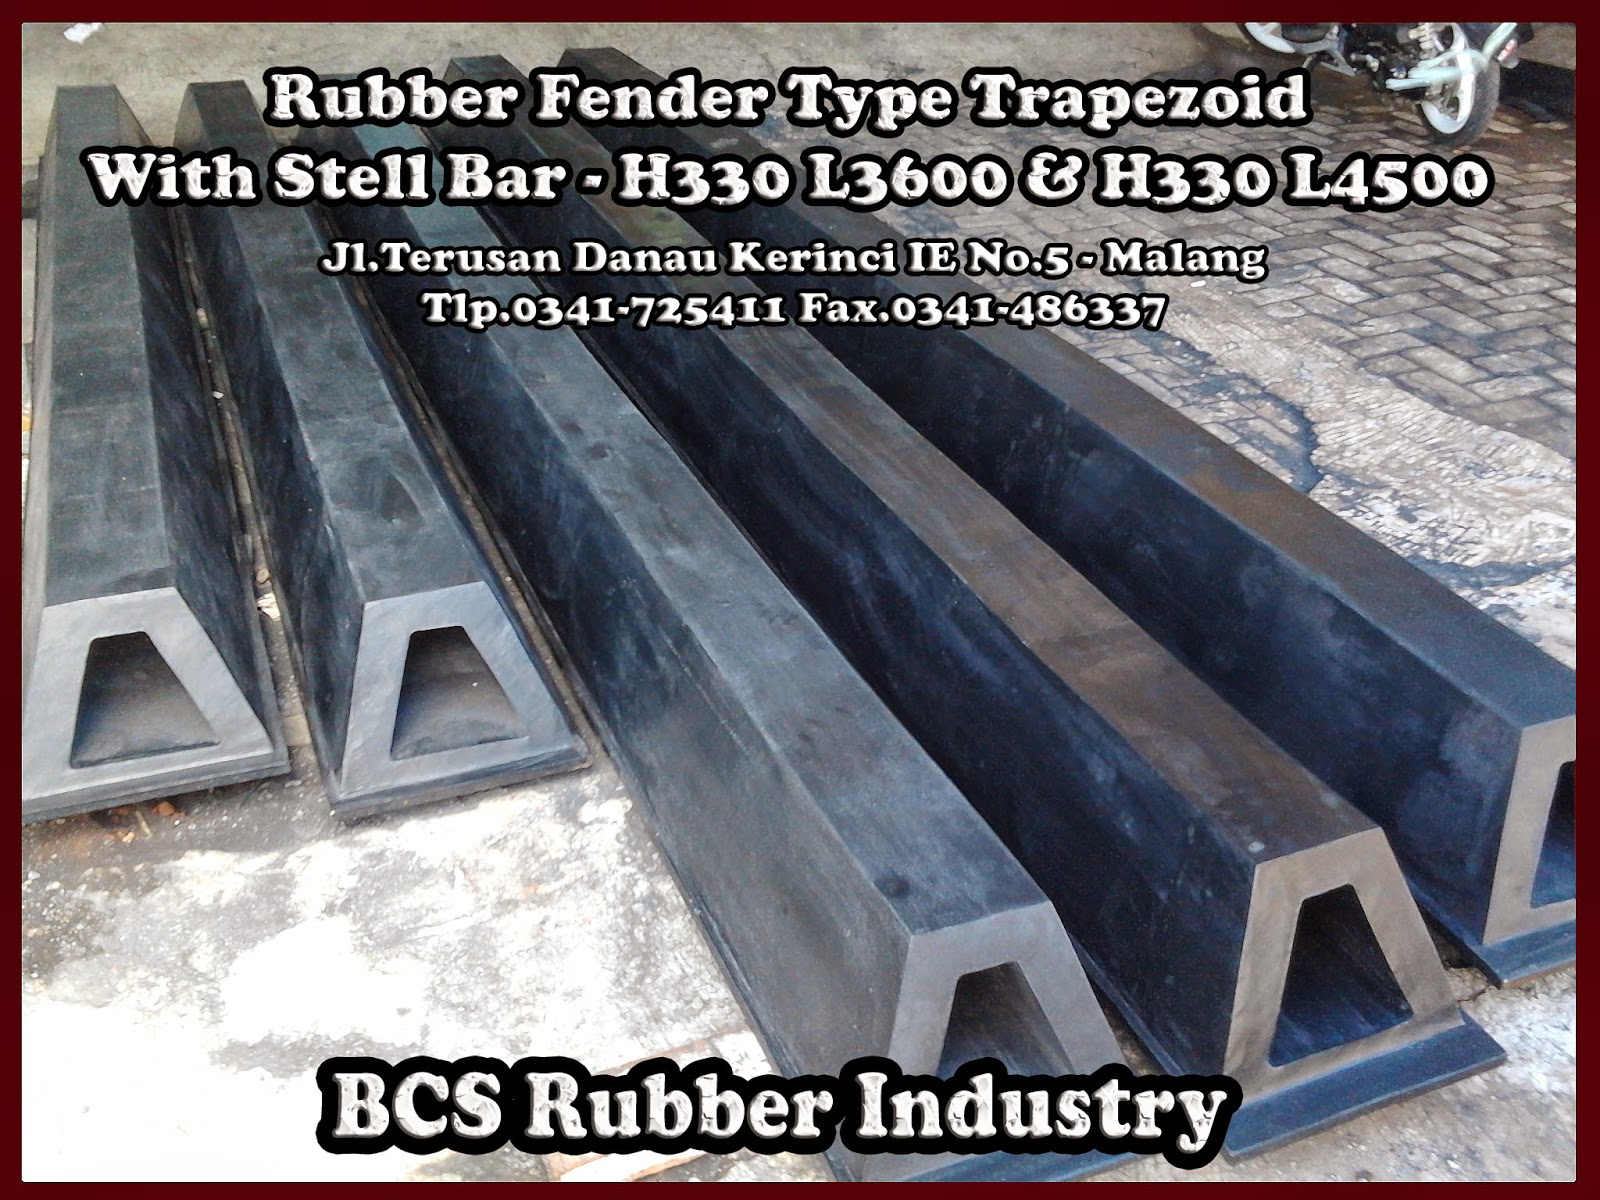 Gallery Product Rubber Fender Trapezoid- BCS Rubber Industry